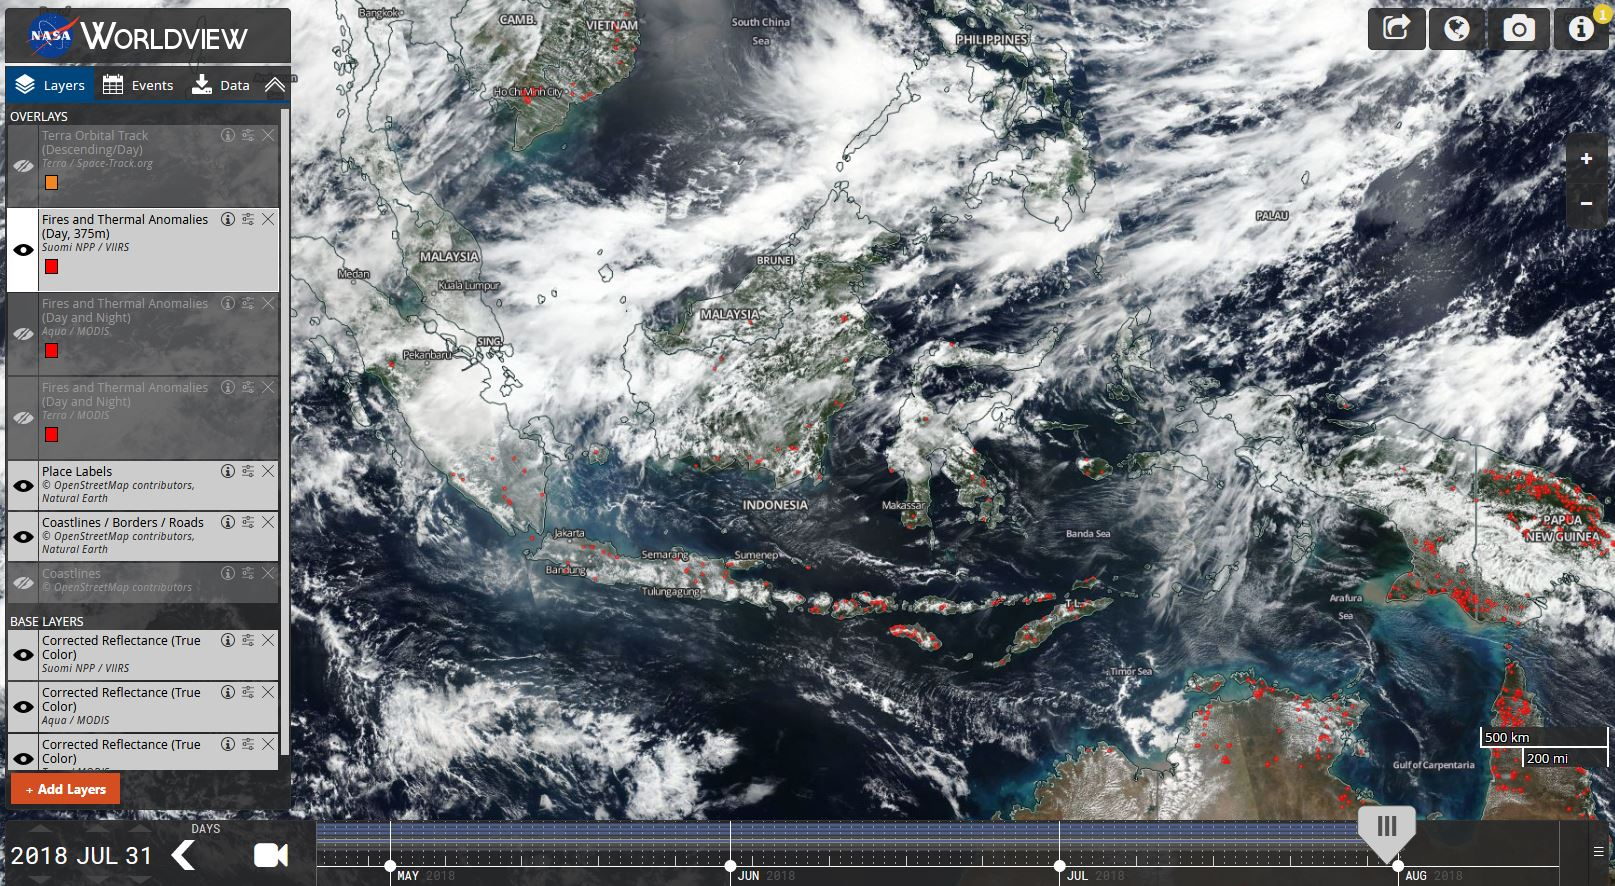 Satellite imagery provided by NASA shows fires and hotspots in Indonesia and neighboring countries. (Courtesy NASA Worldview)